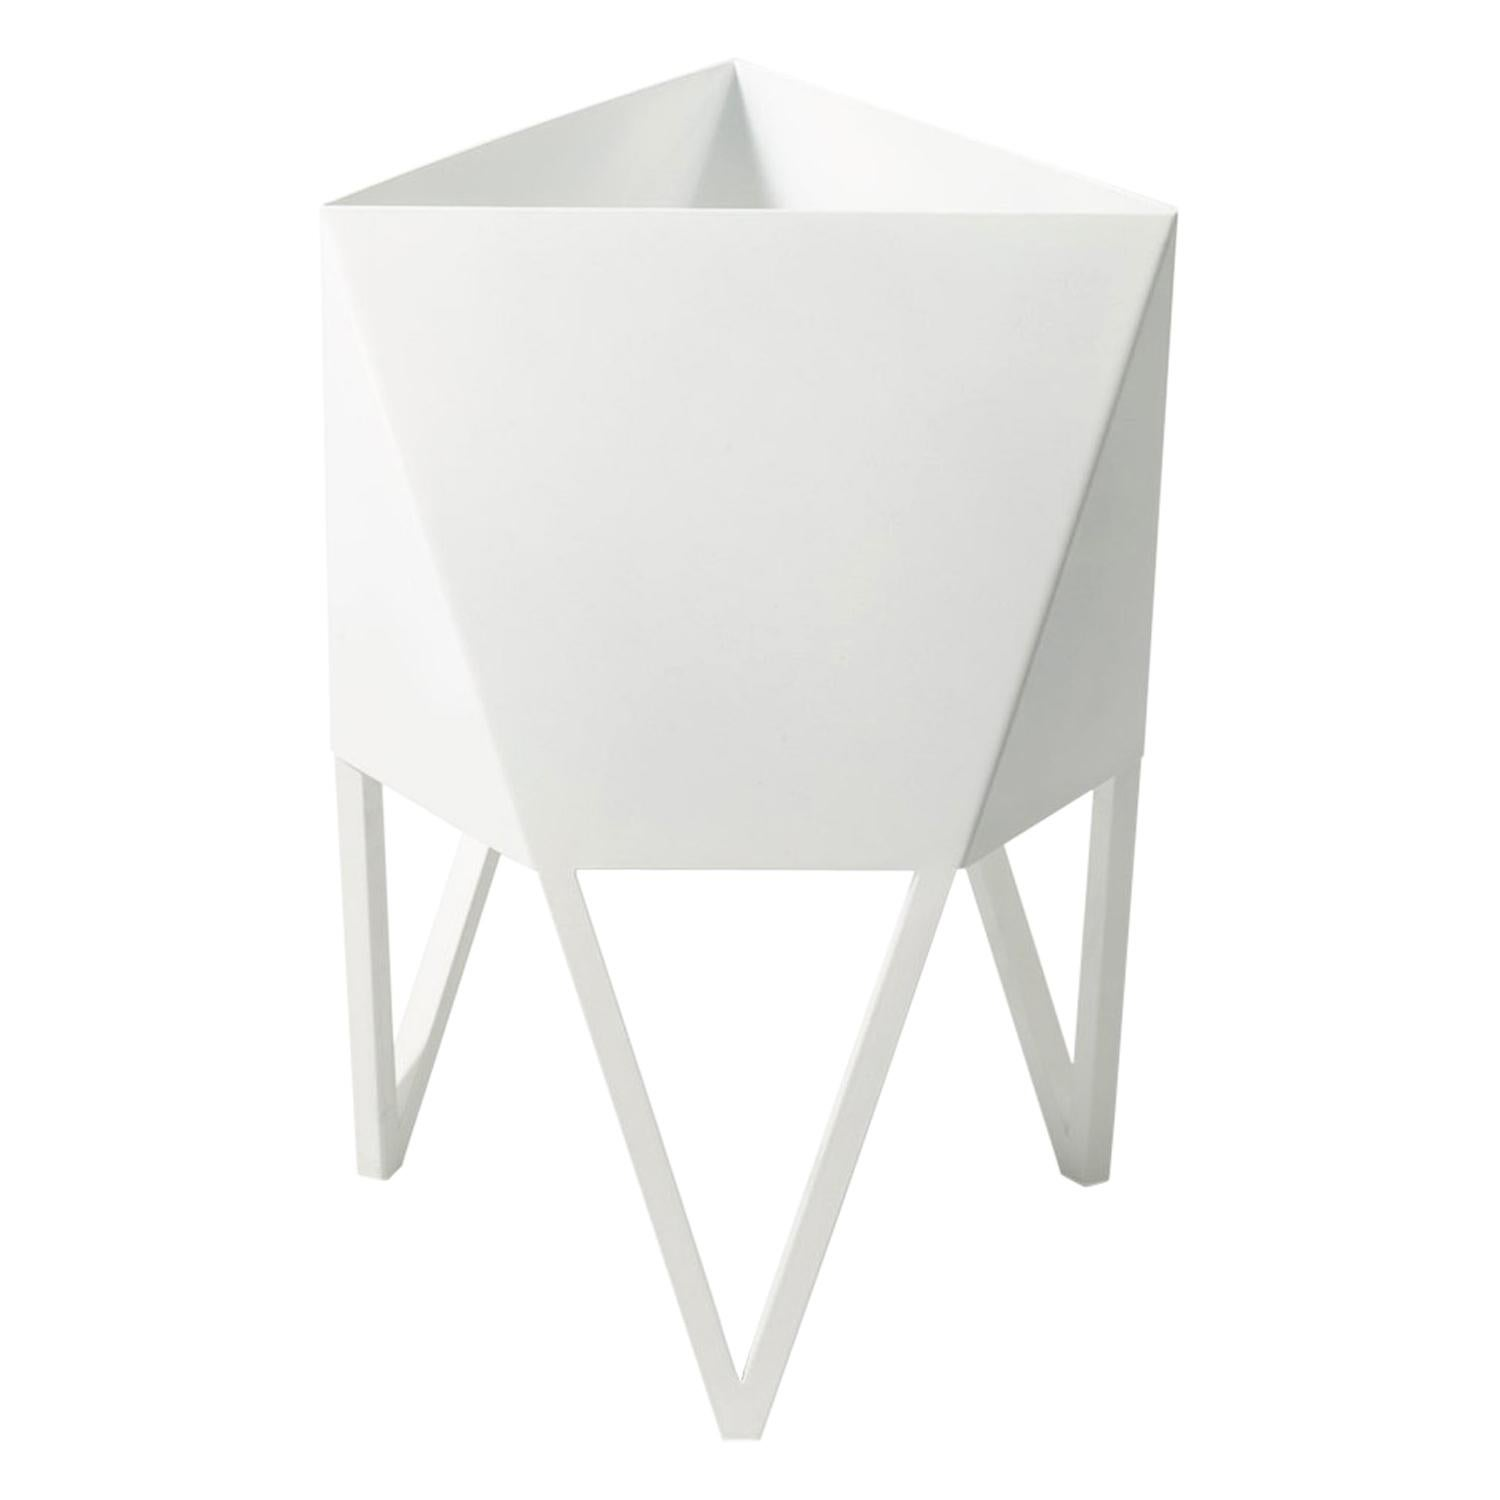 Small Deca Planter in Glossy White by Force/Collide, Indoor/Outdoor Steel